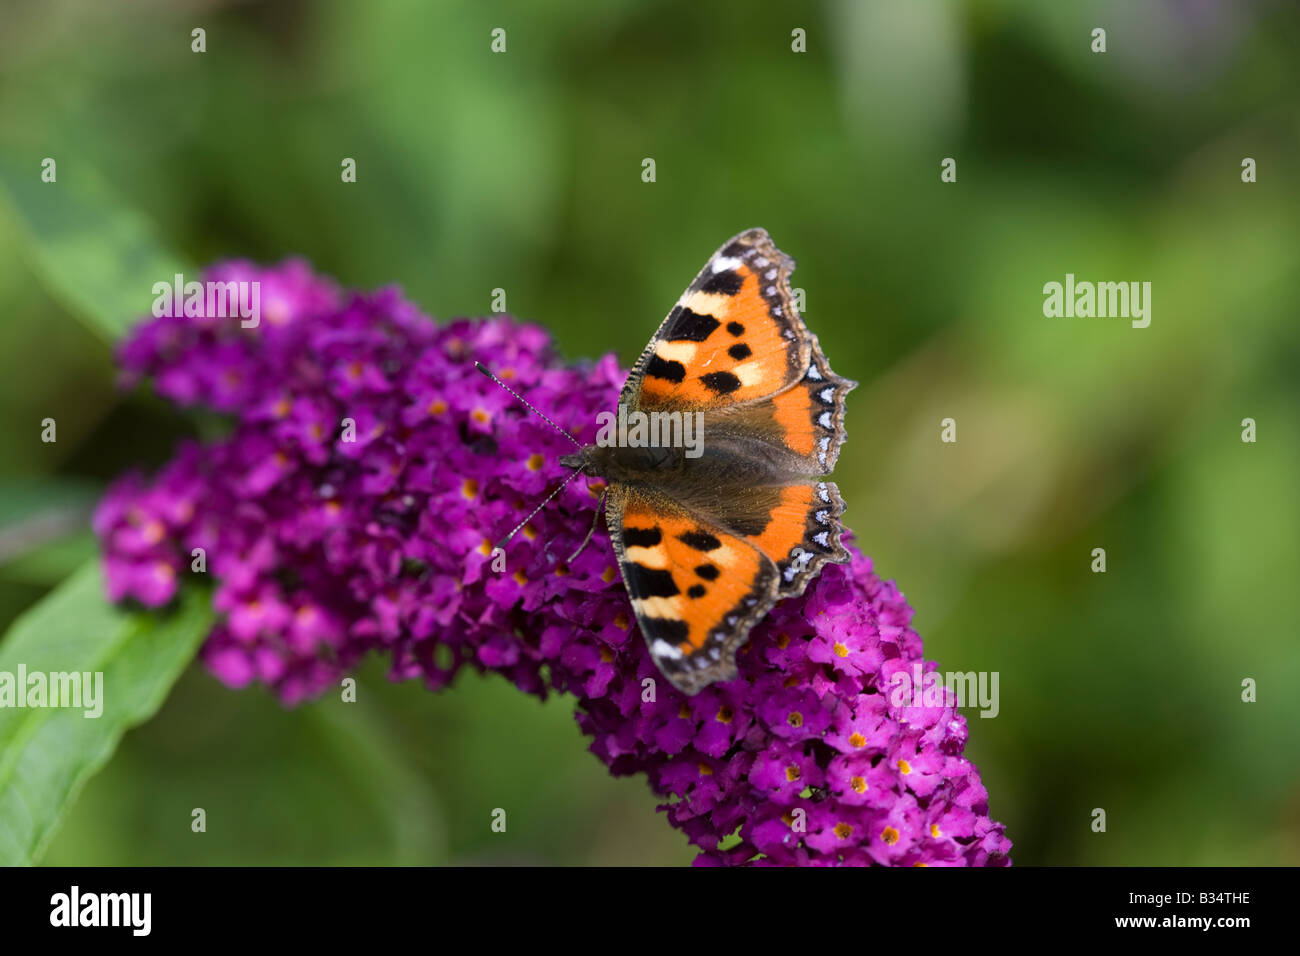 Tortiosehell butterfly on Buddleia - Stock Image